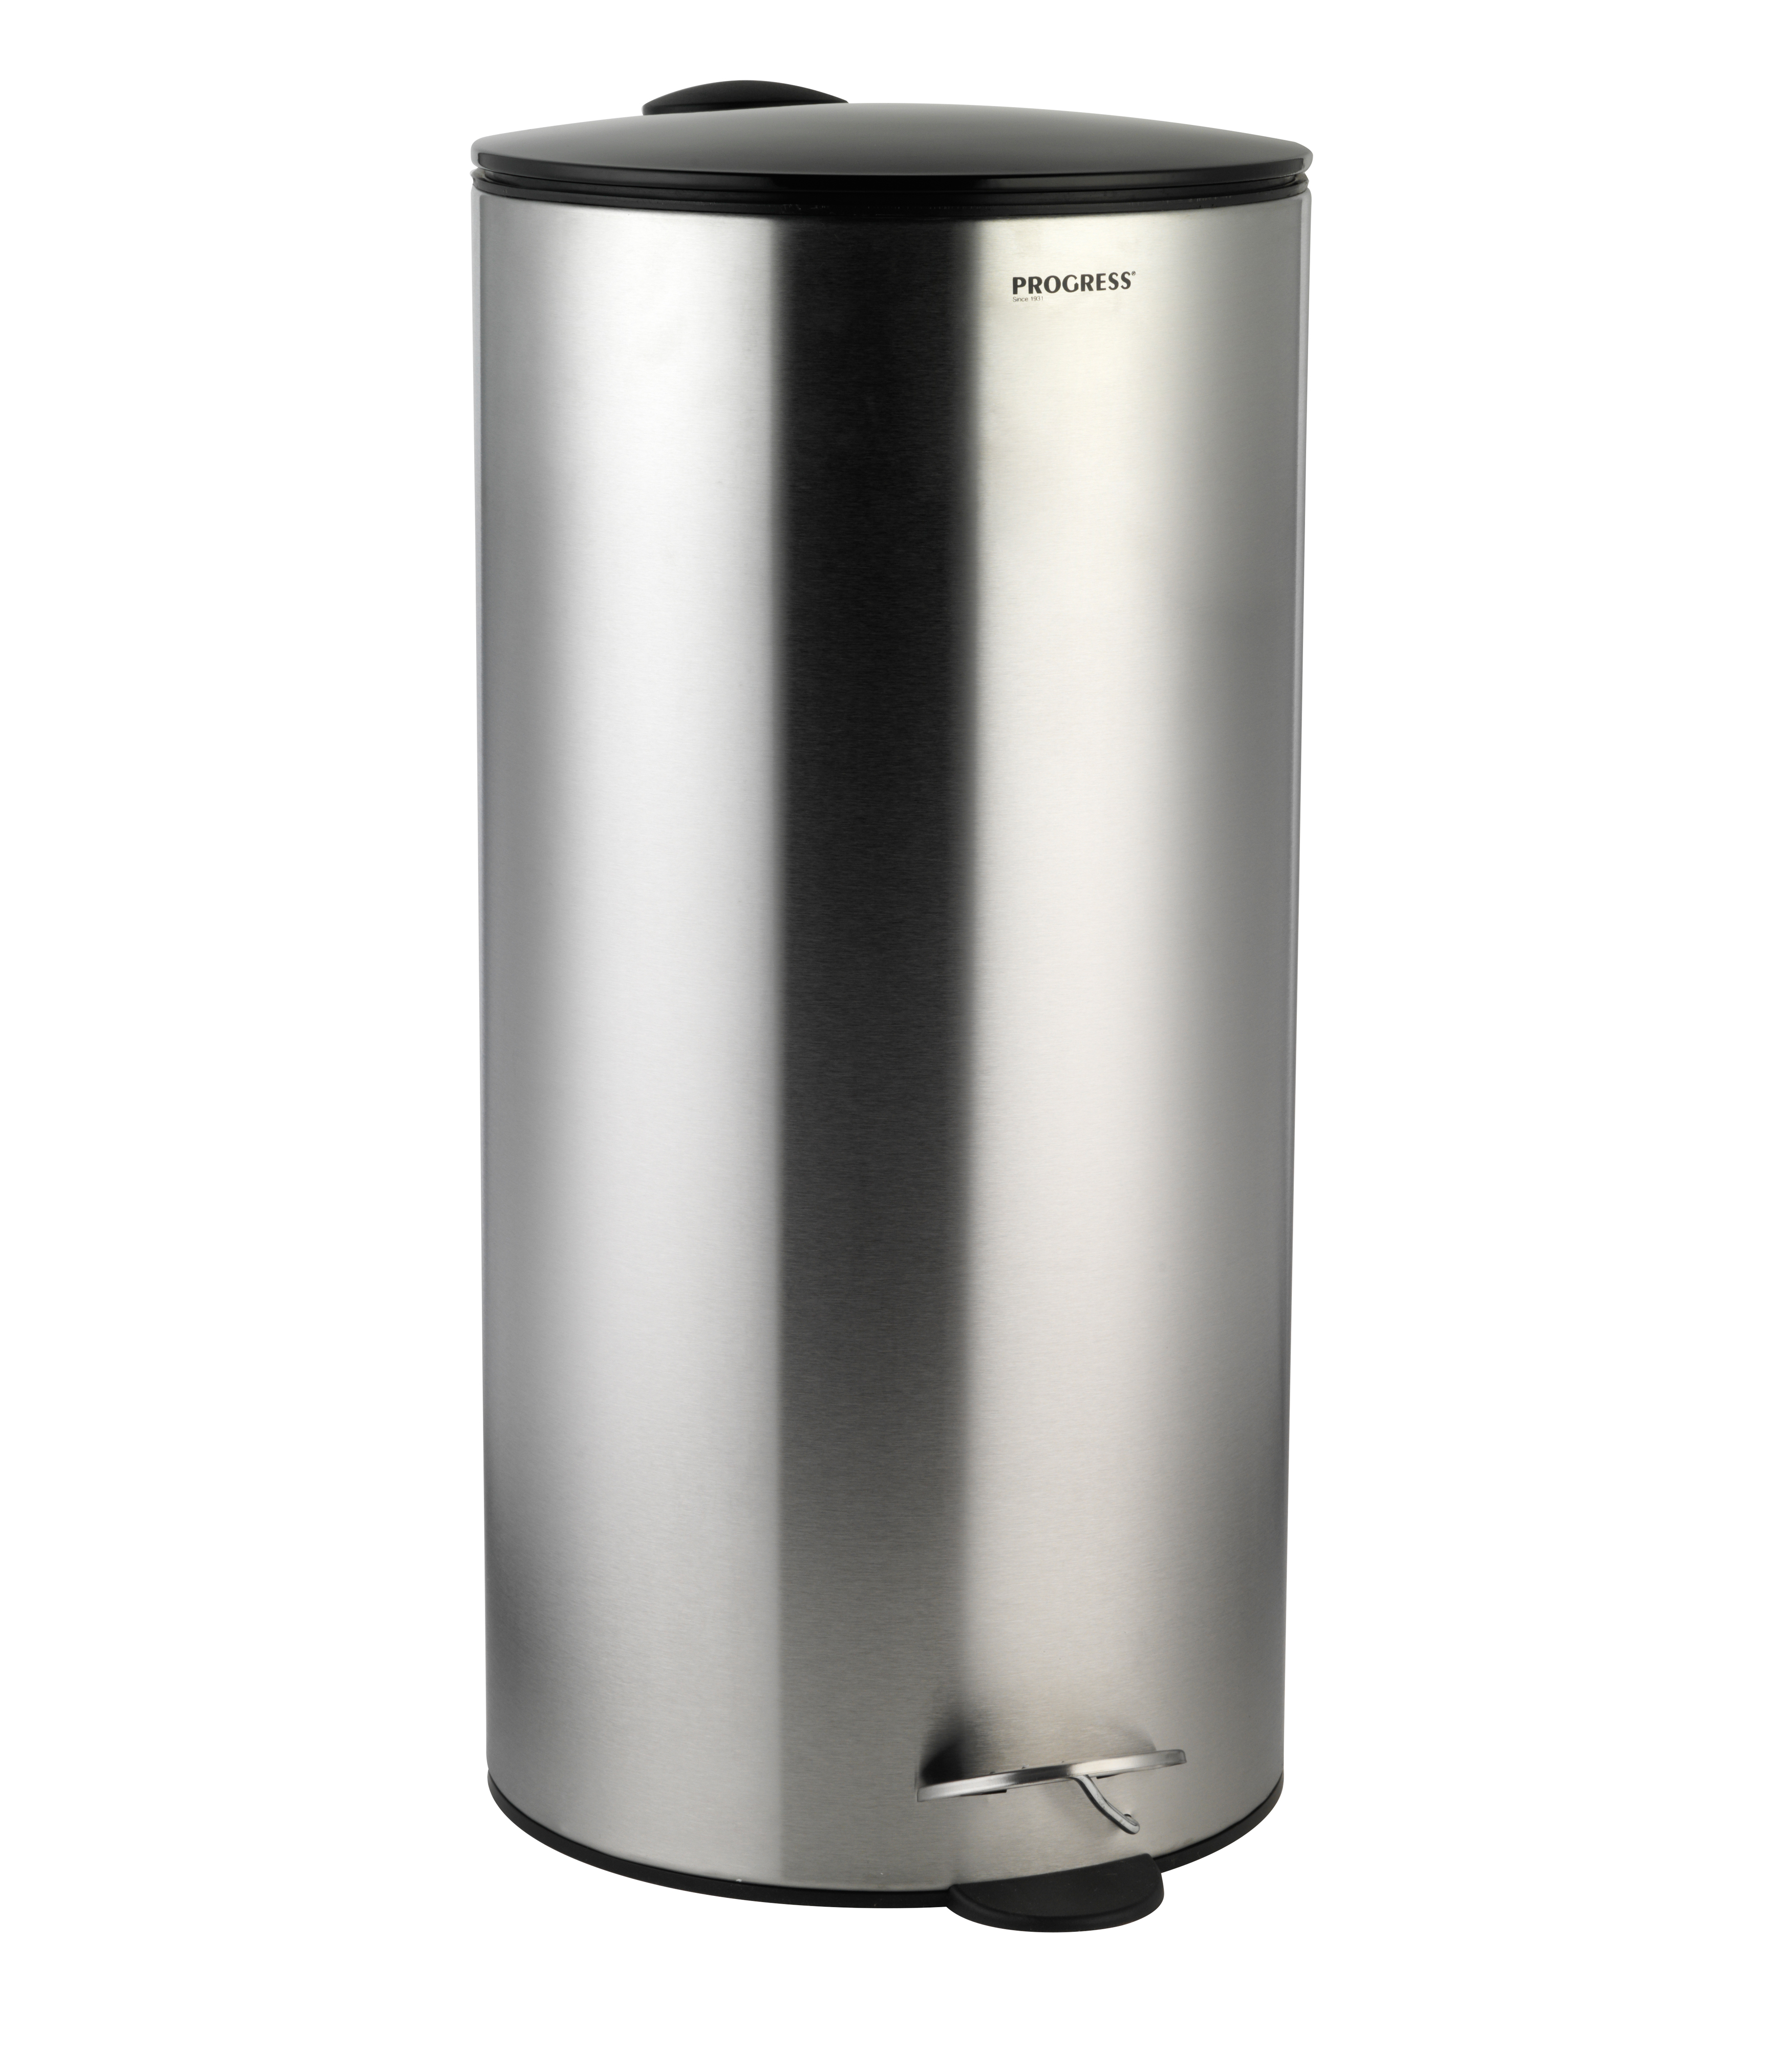 Progress 30 Litre Stainless Steel Pedal Bin with Black Soft Closing ...